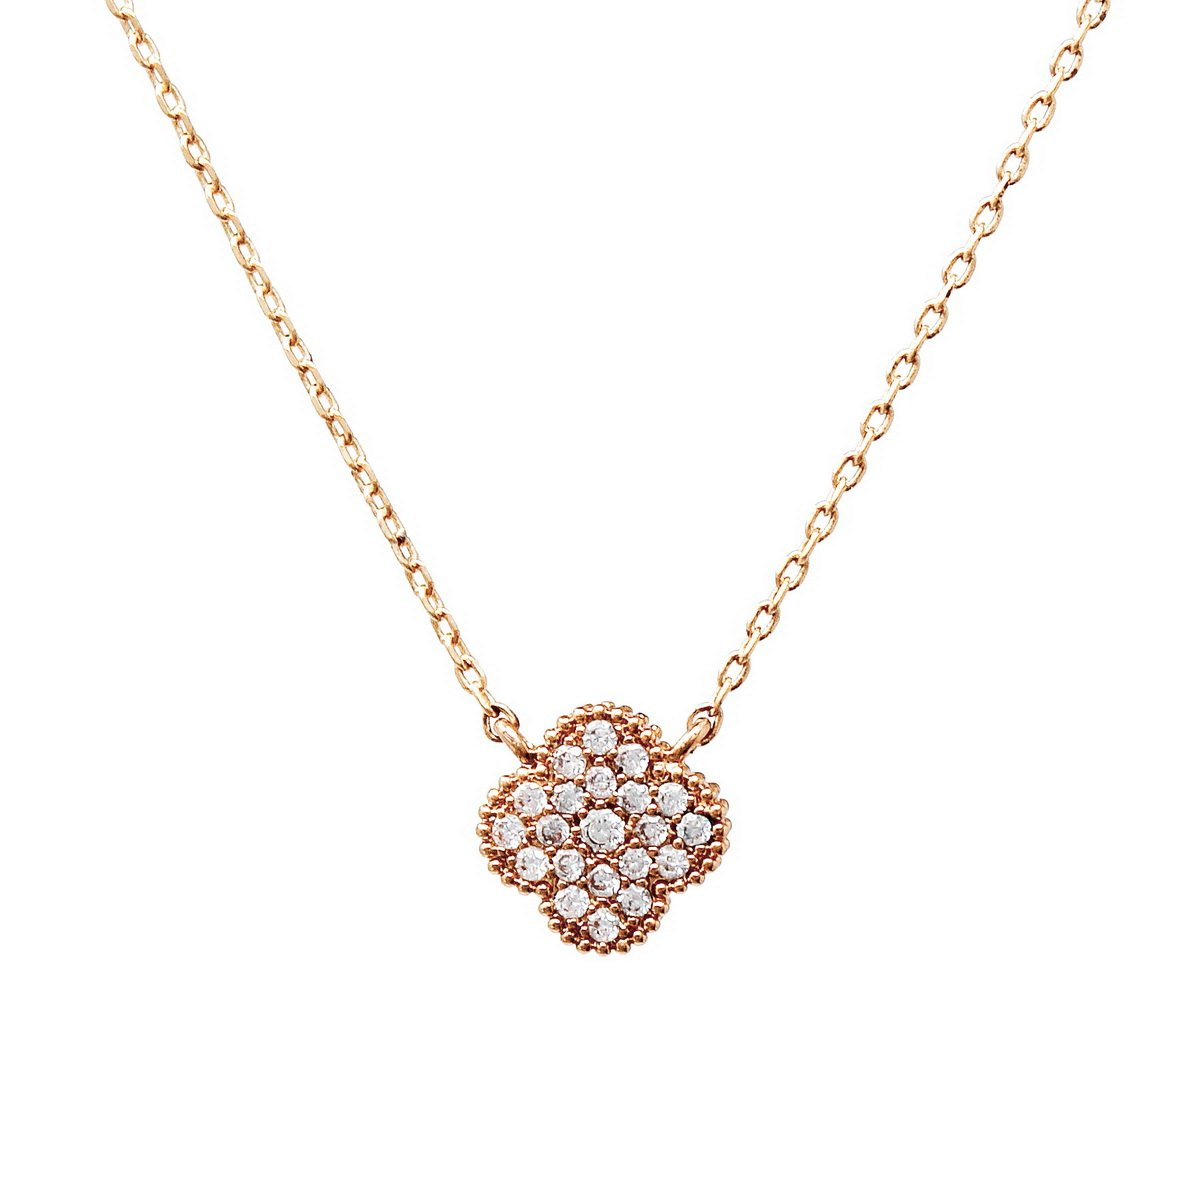 BITZ CZ PAVE CLOVER SHAPE PENDANT SHORT CHAIN NECKLACE